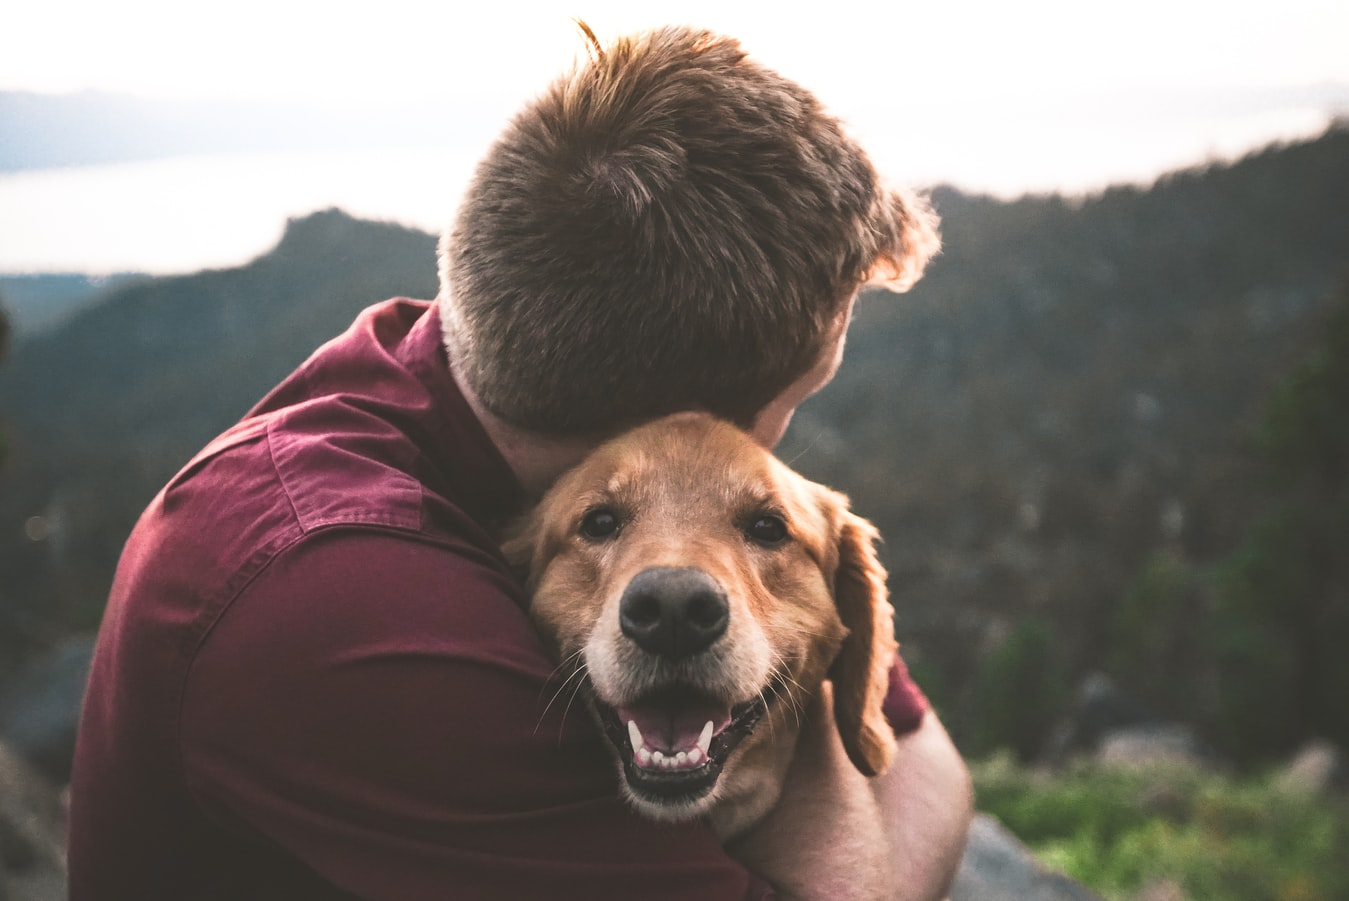 do-emotional-support-animals-deserve-the-same-rights-as-service-animals?